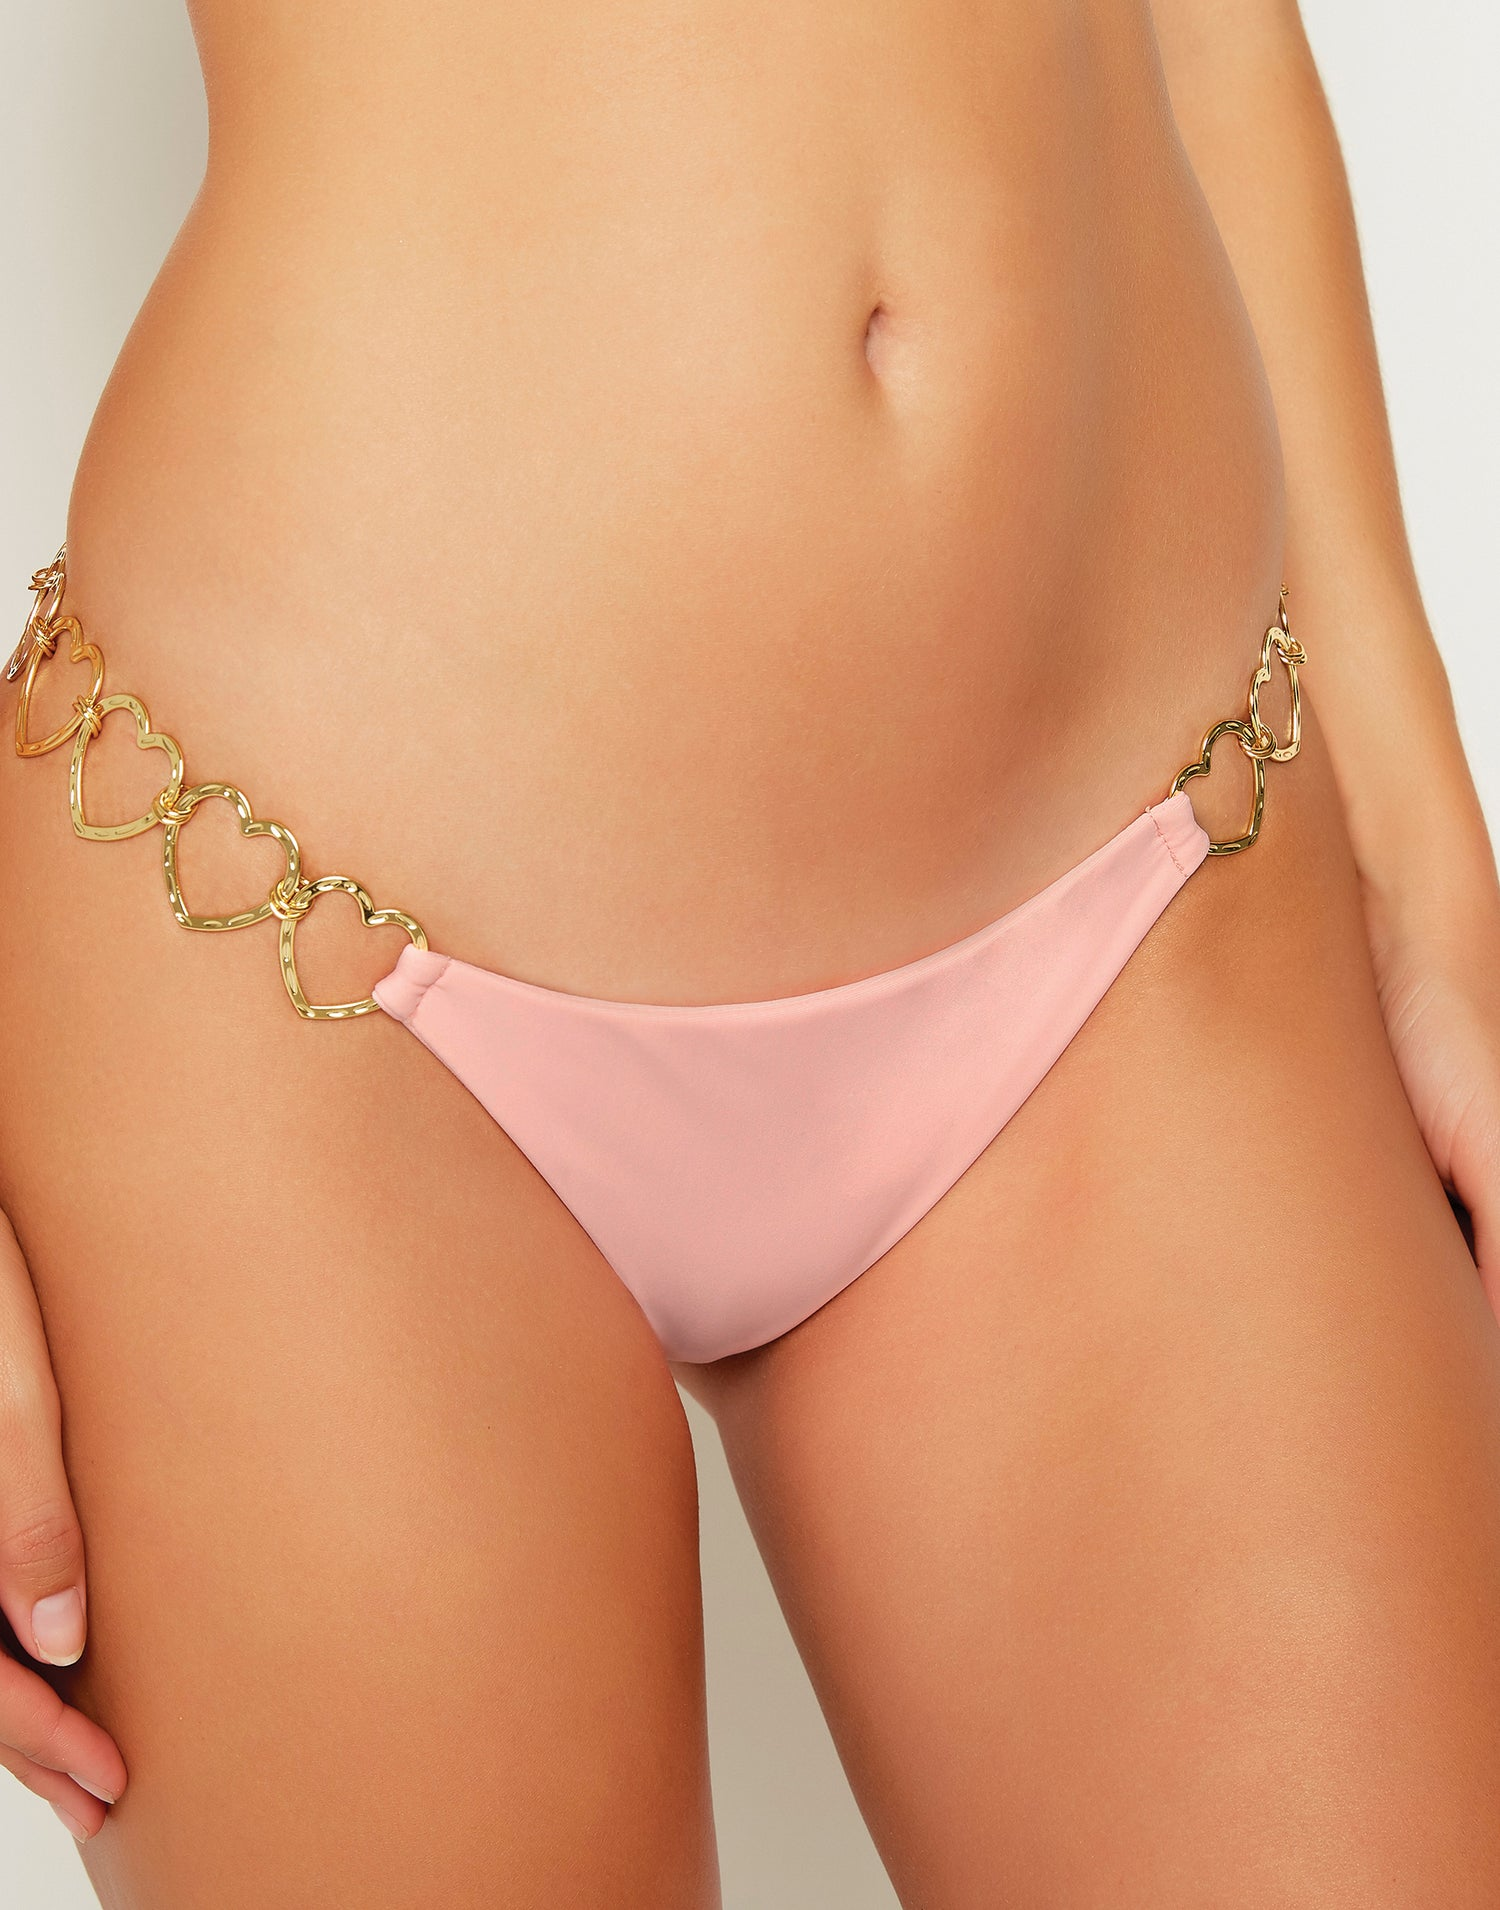 Lexi Love Brazilian Bikini Bottom in Cherry Blossom with Gold Heart Hardware - detail view